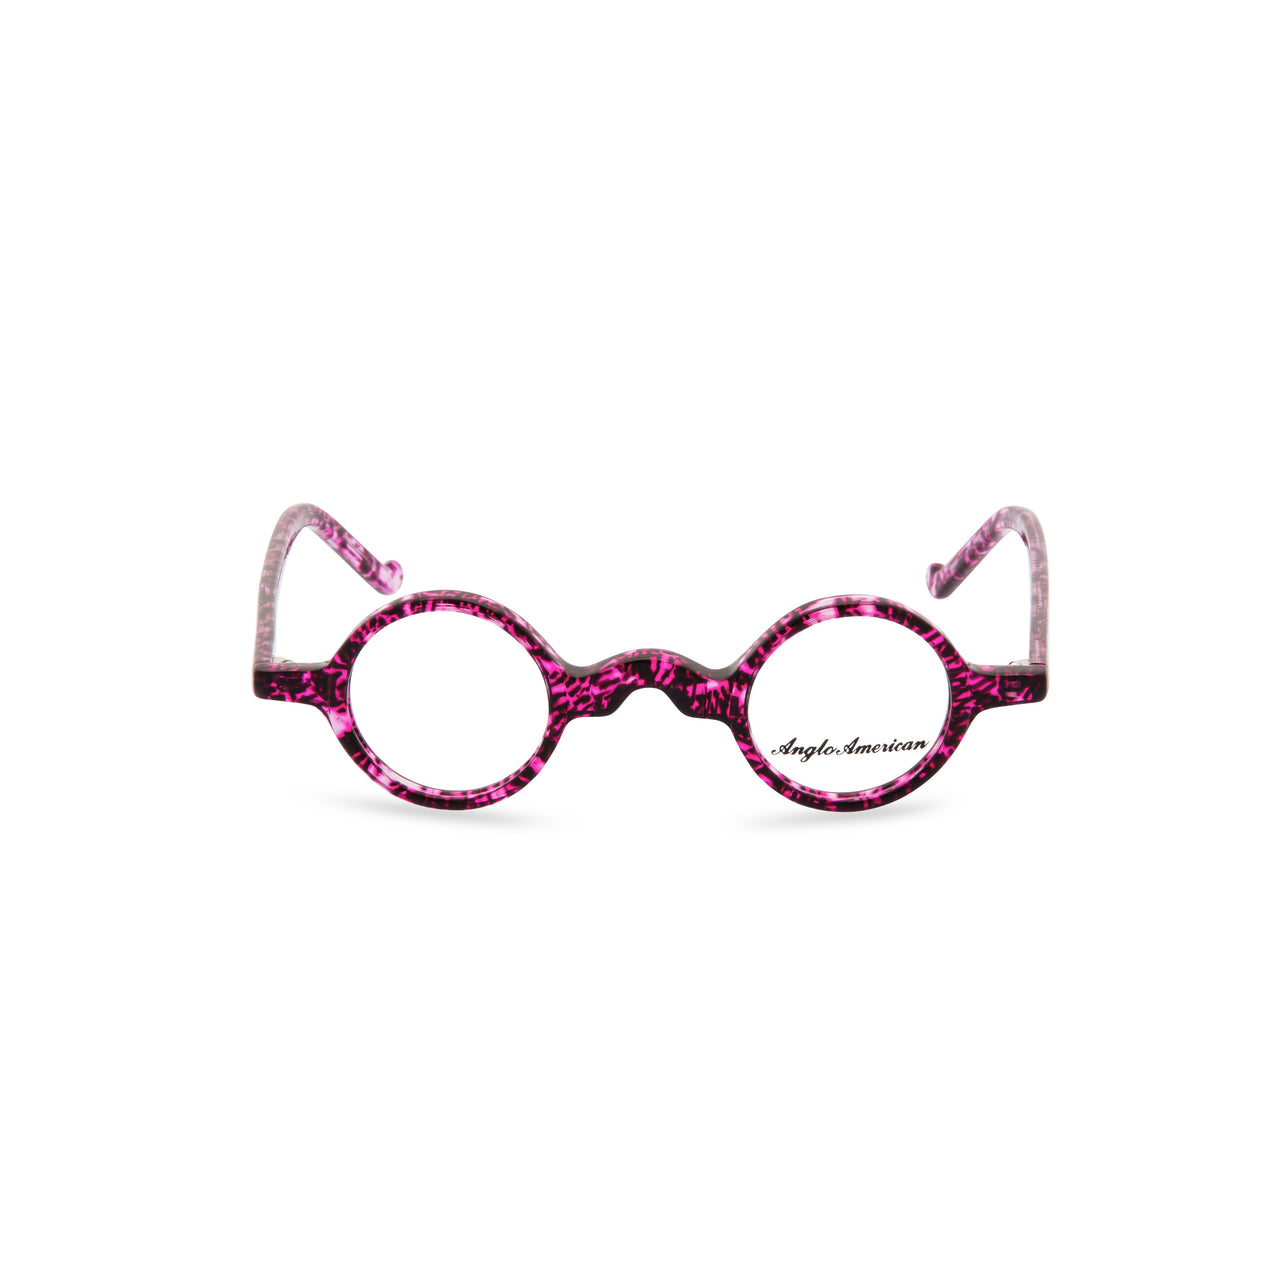 Anglo American Optical Groucho - Round Glasses, Purple Haze